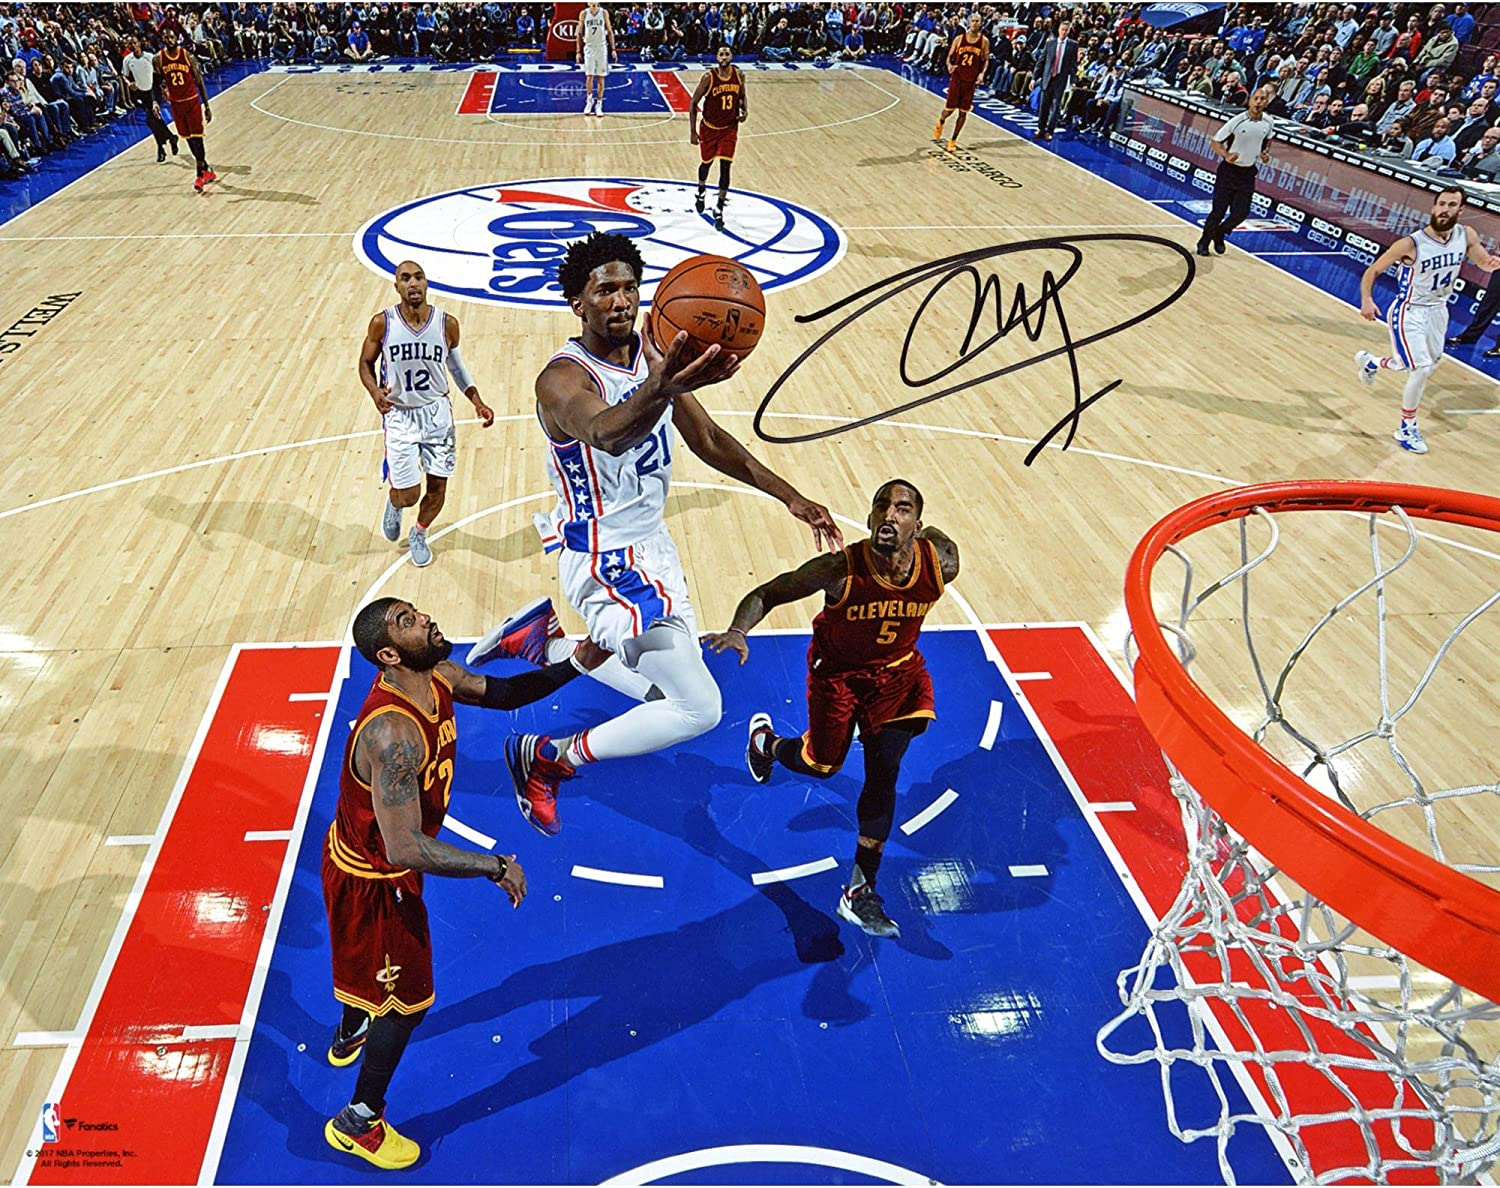 Joel Embiid Philadelphia 76ers Autographed 8' x 10' Lay-Up Photograph - Fanatics Authentic Certified